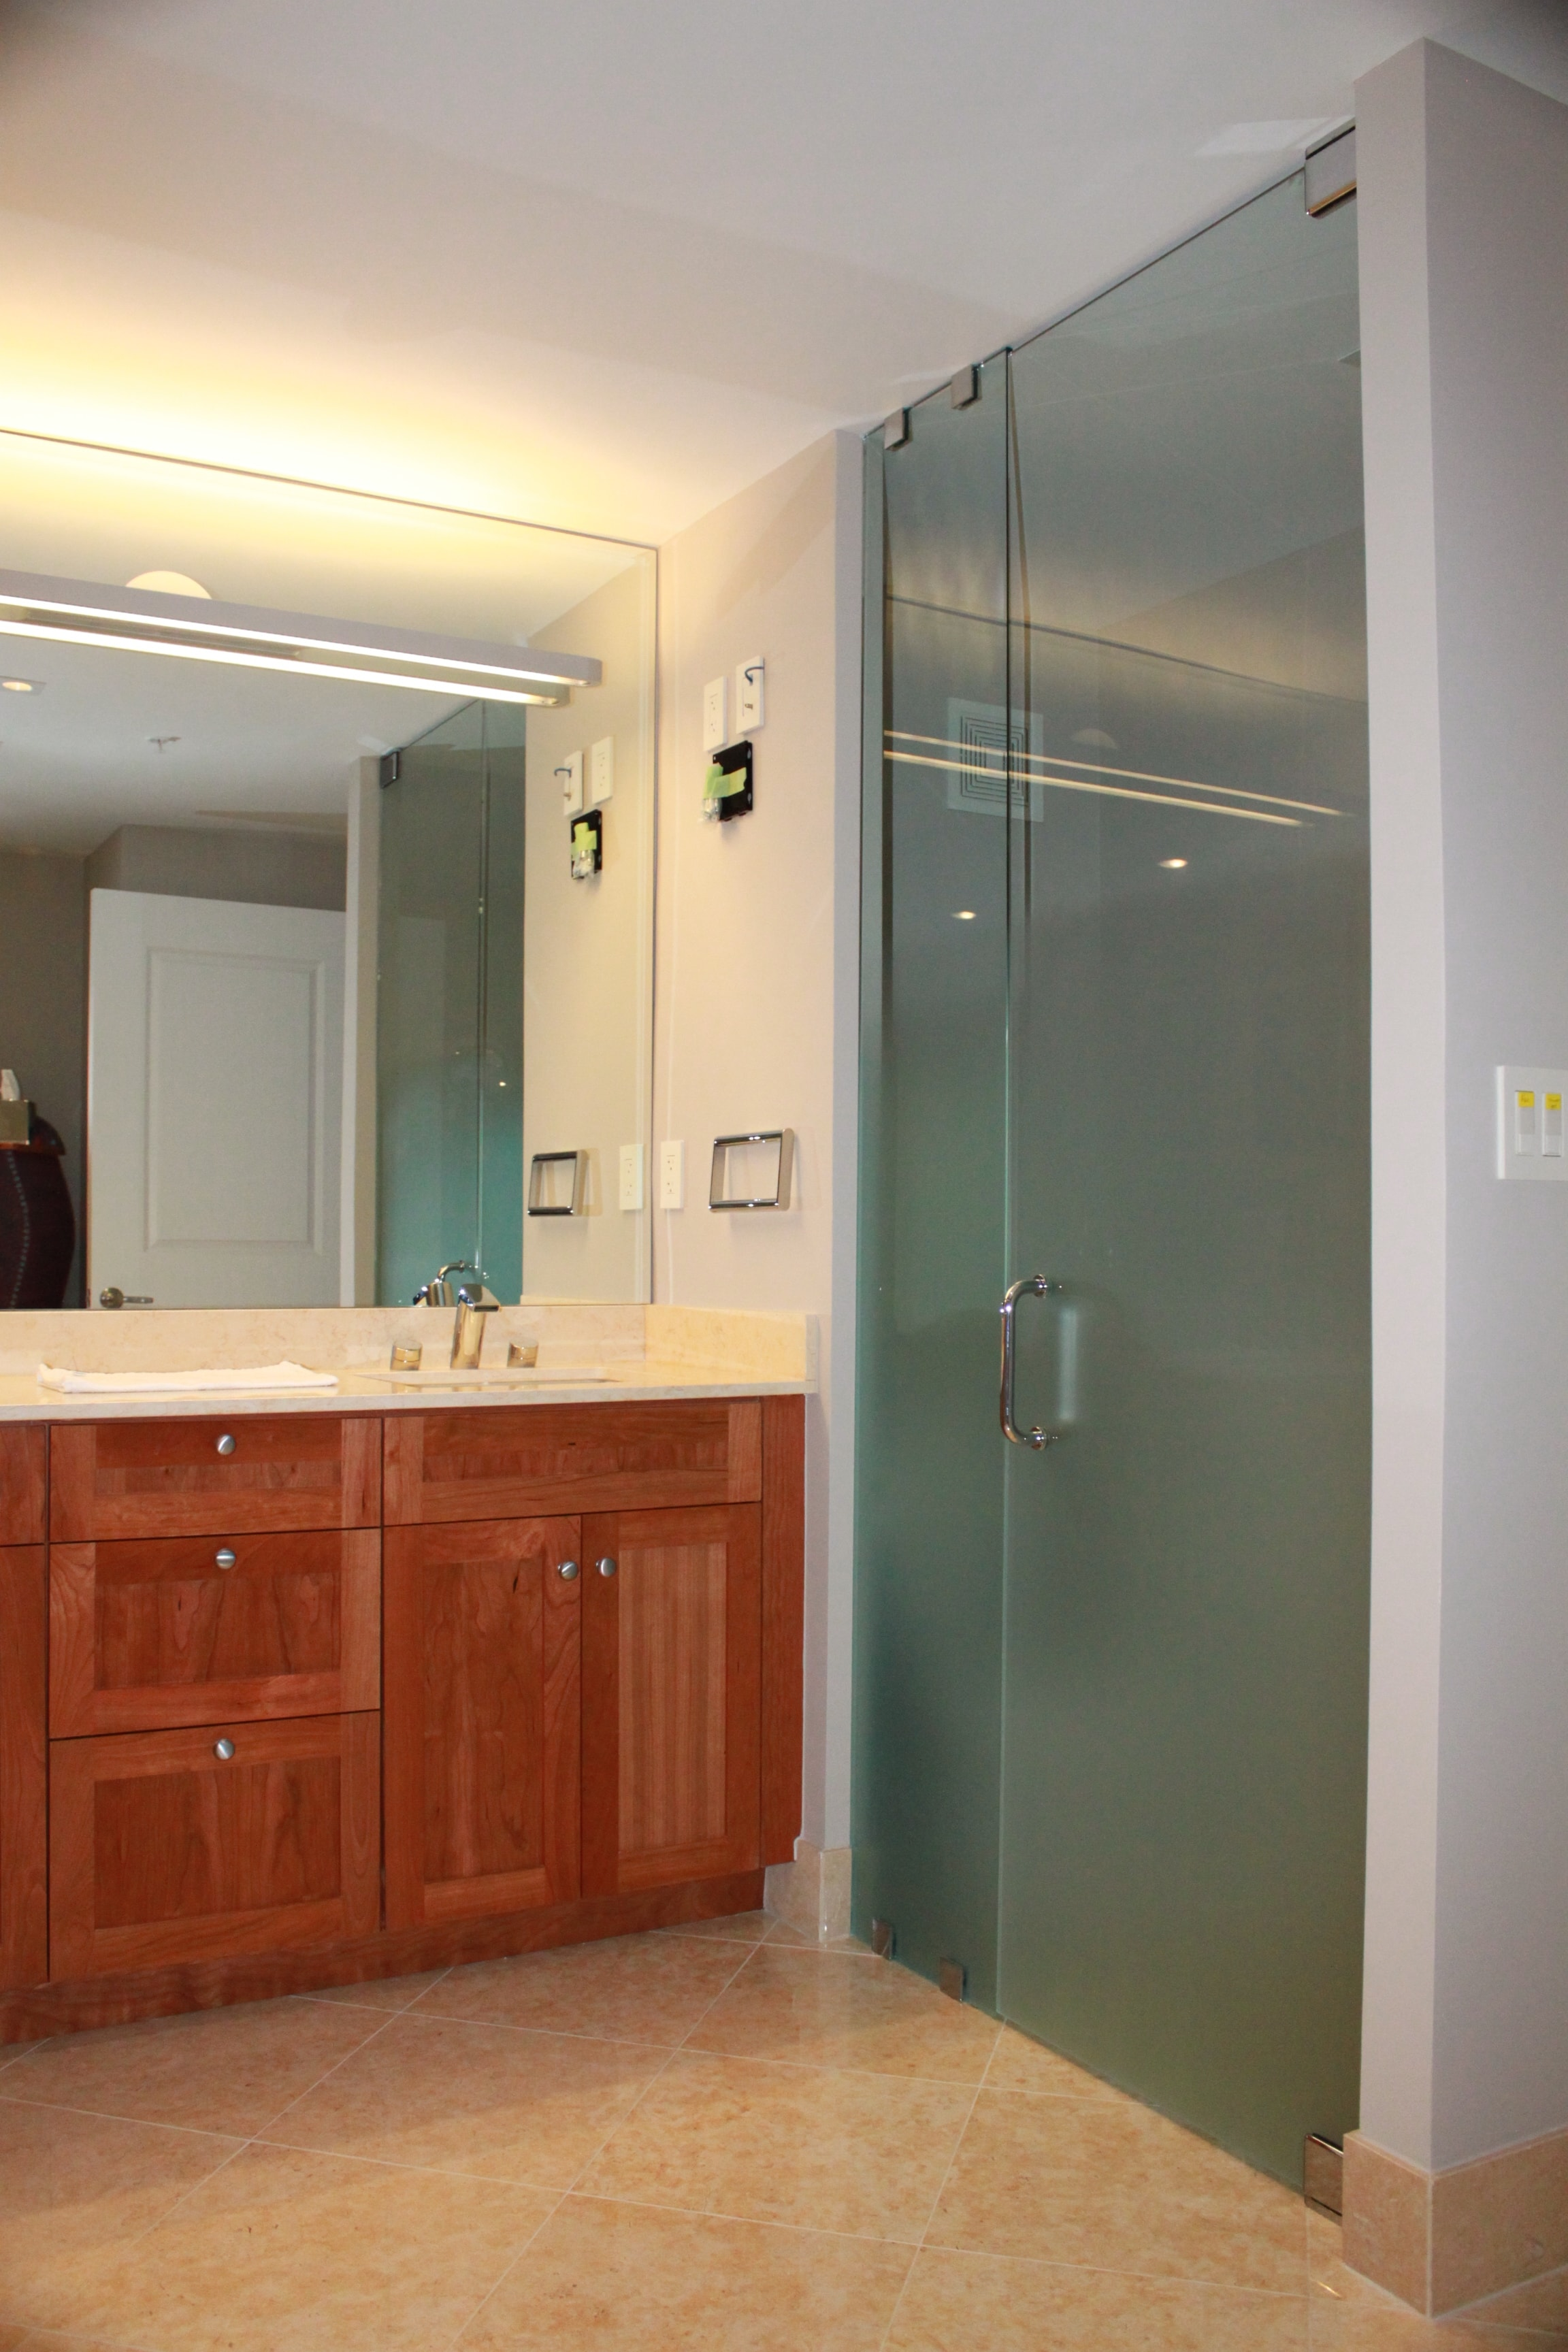 Toilet Room Doors - Site Const.-min